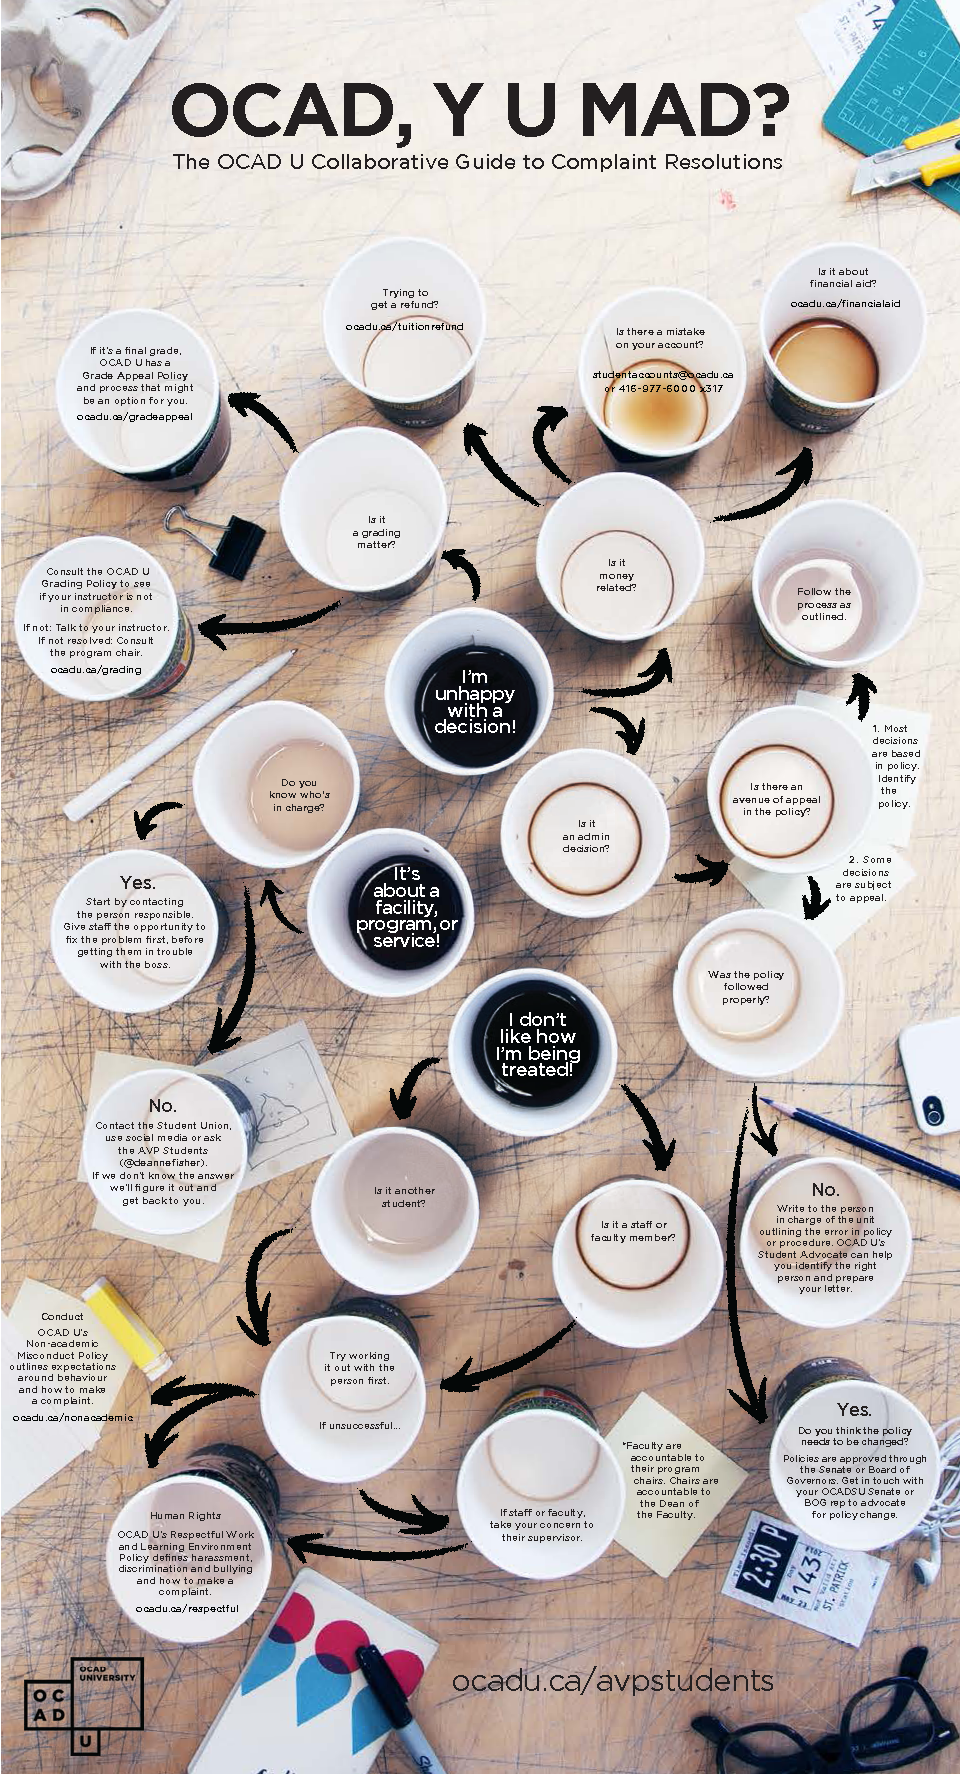 Infographic using coffee cups to descrbe complaints process at OCAD U (also repeated in text below)